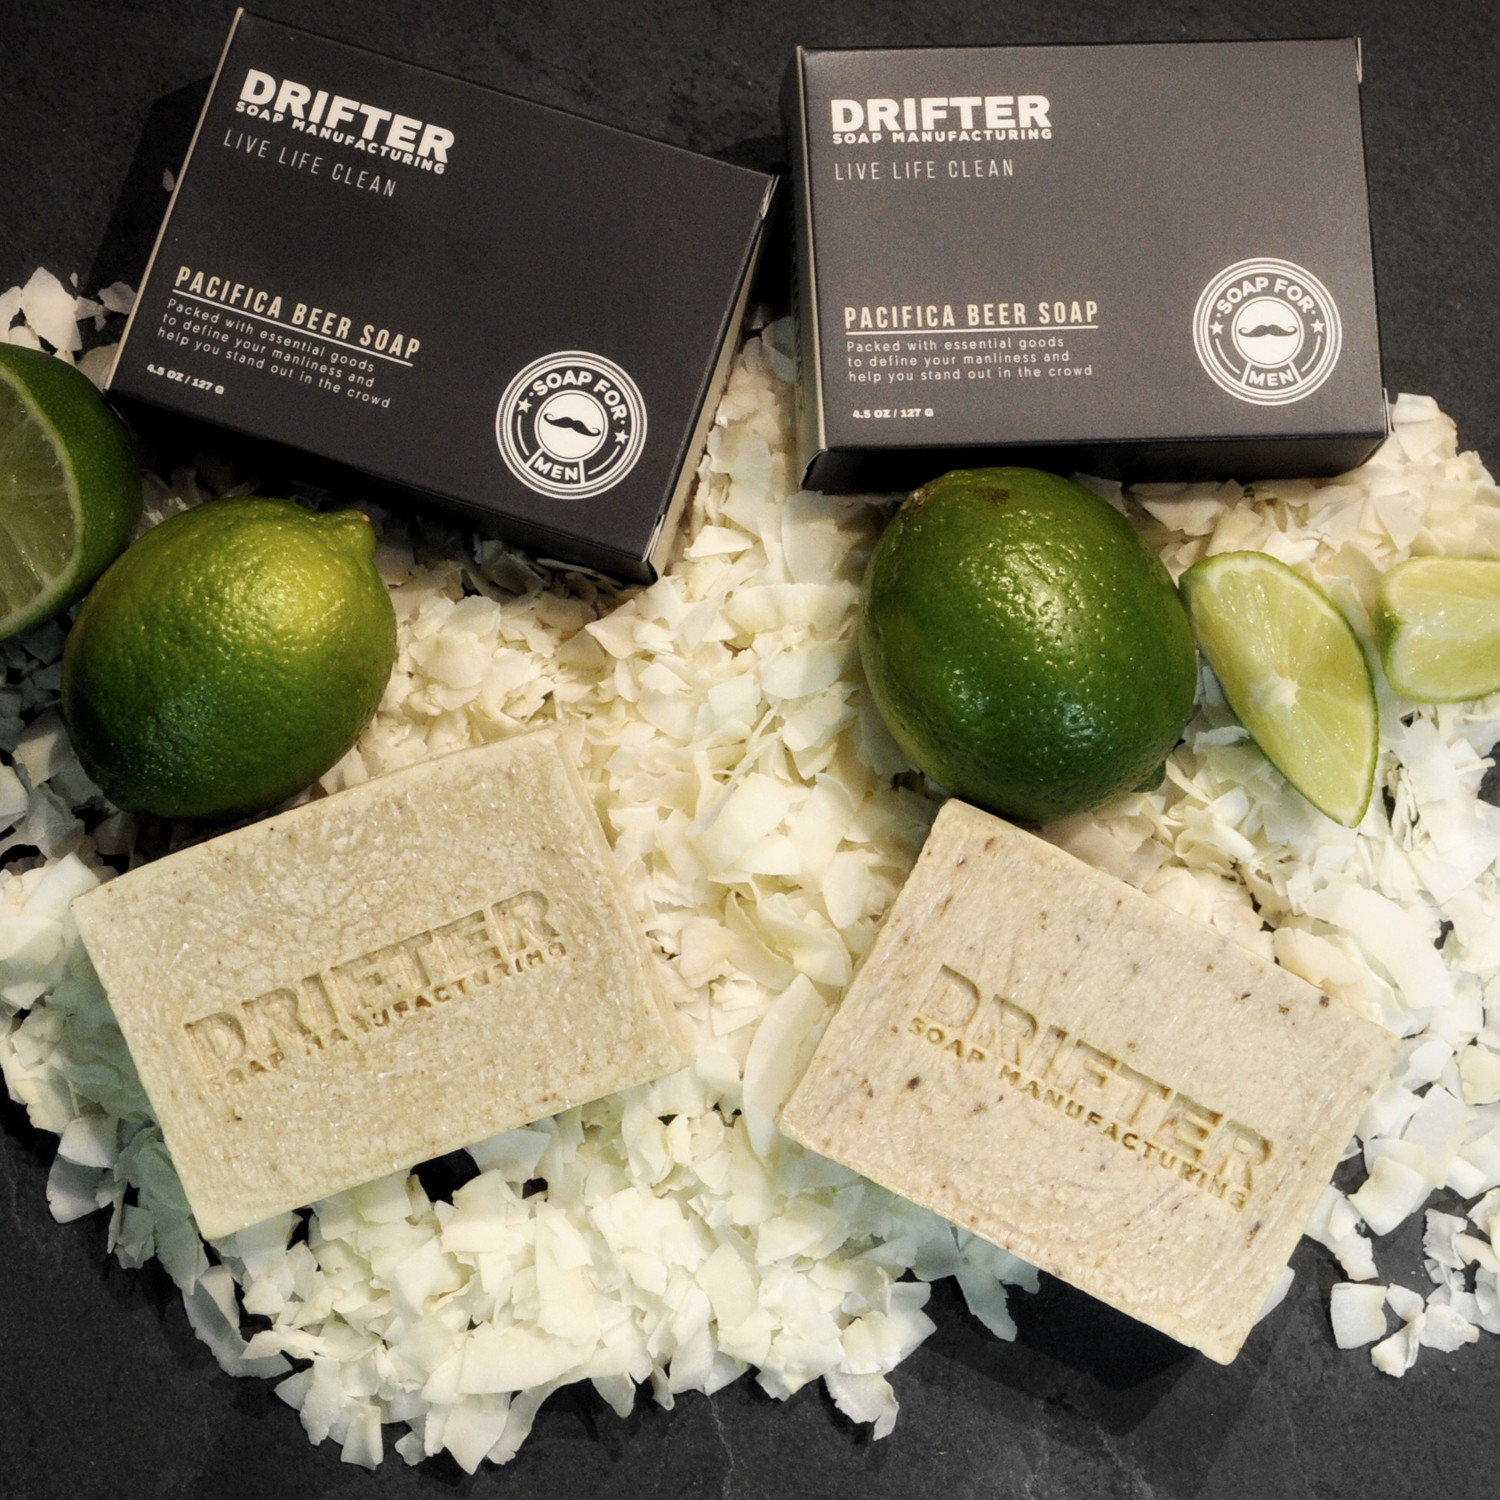 Pacifica beer soap set of 2 drifter grooming touch of modern pacifica beer soap set of 2 nvjuhfo Choice Image